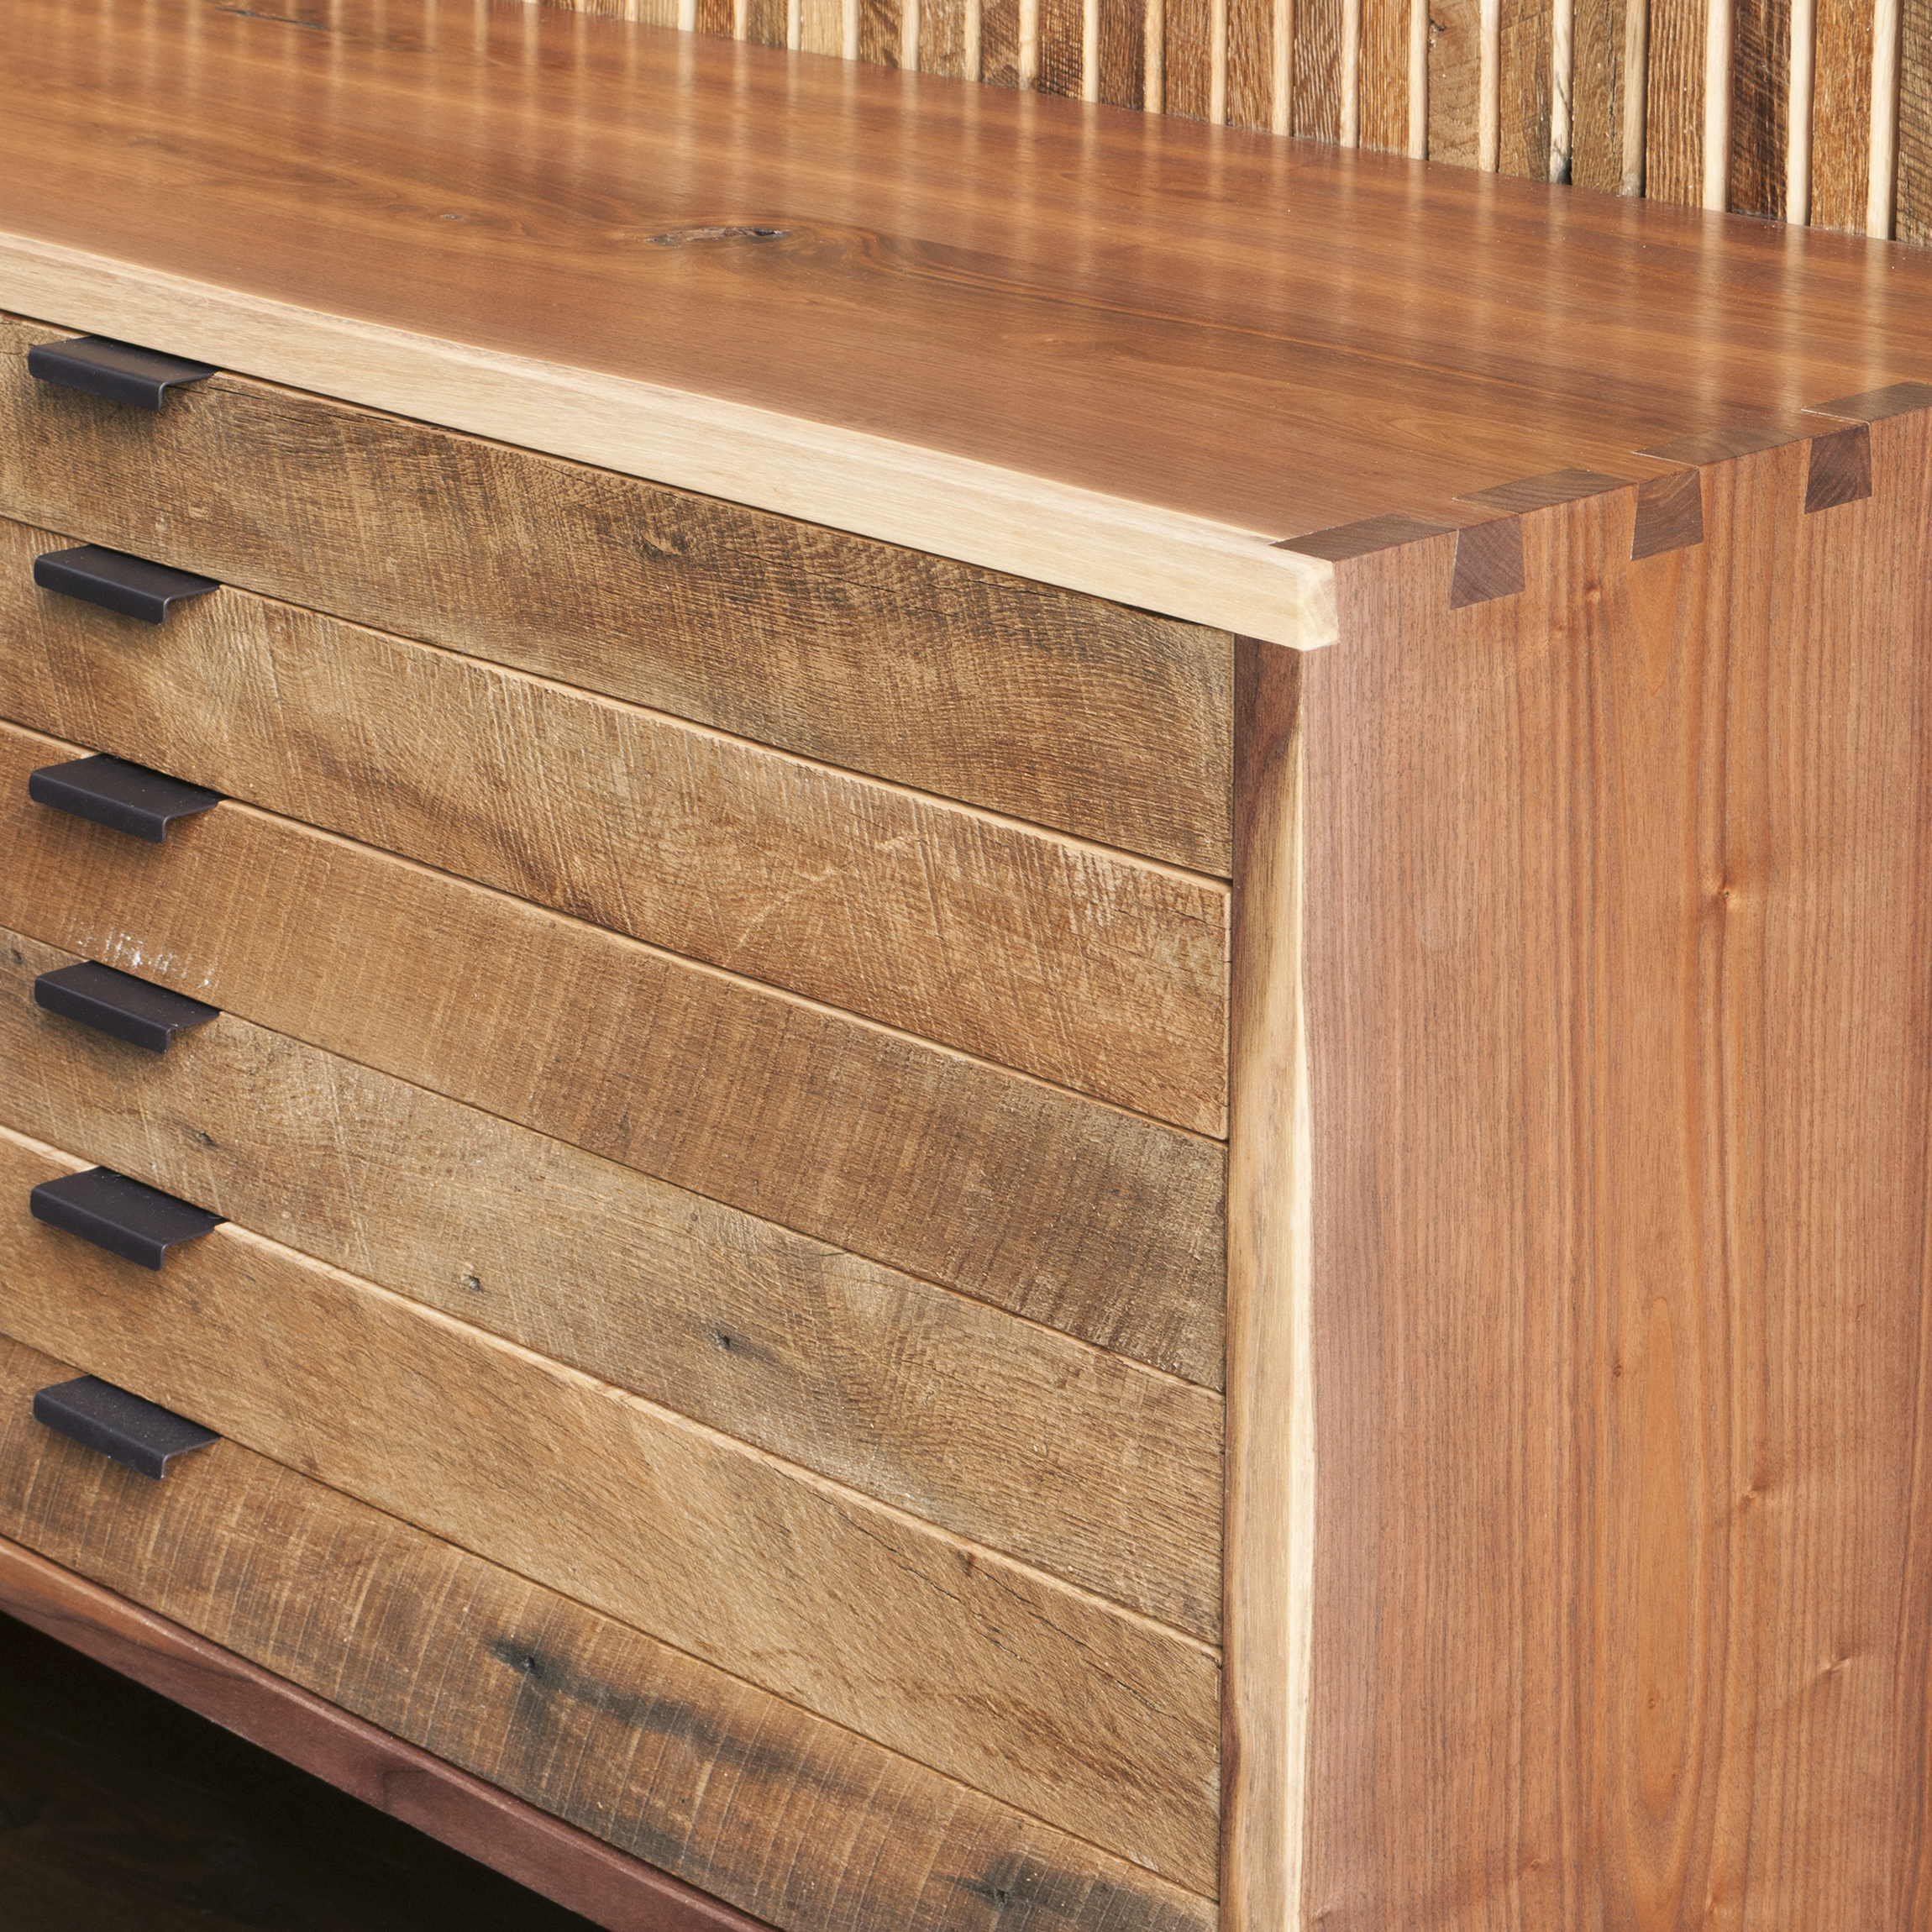 hand-cut-dovetail-lv-wood-amy-lau-design